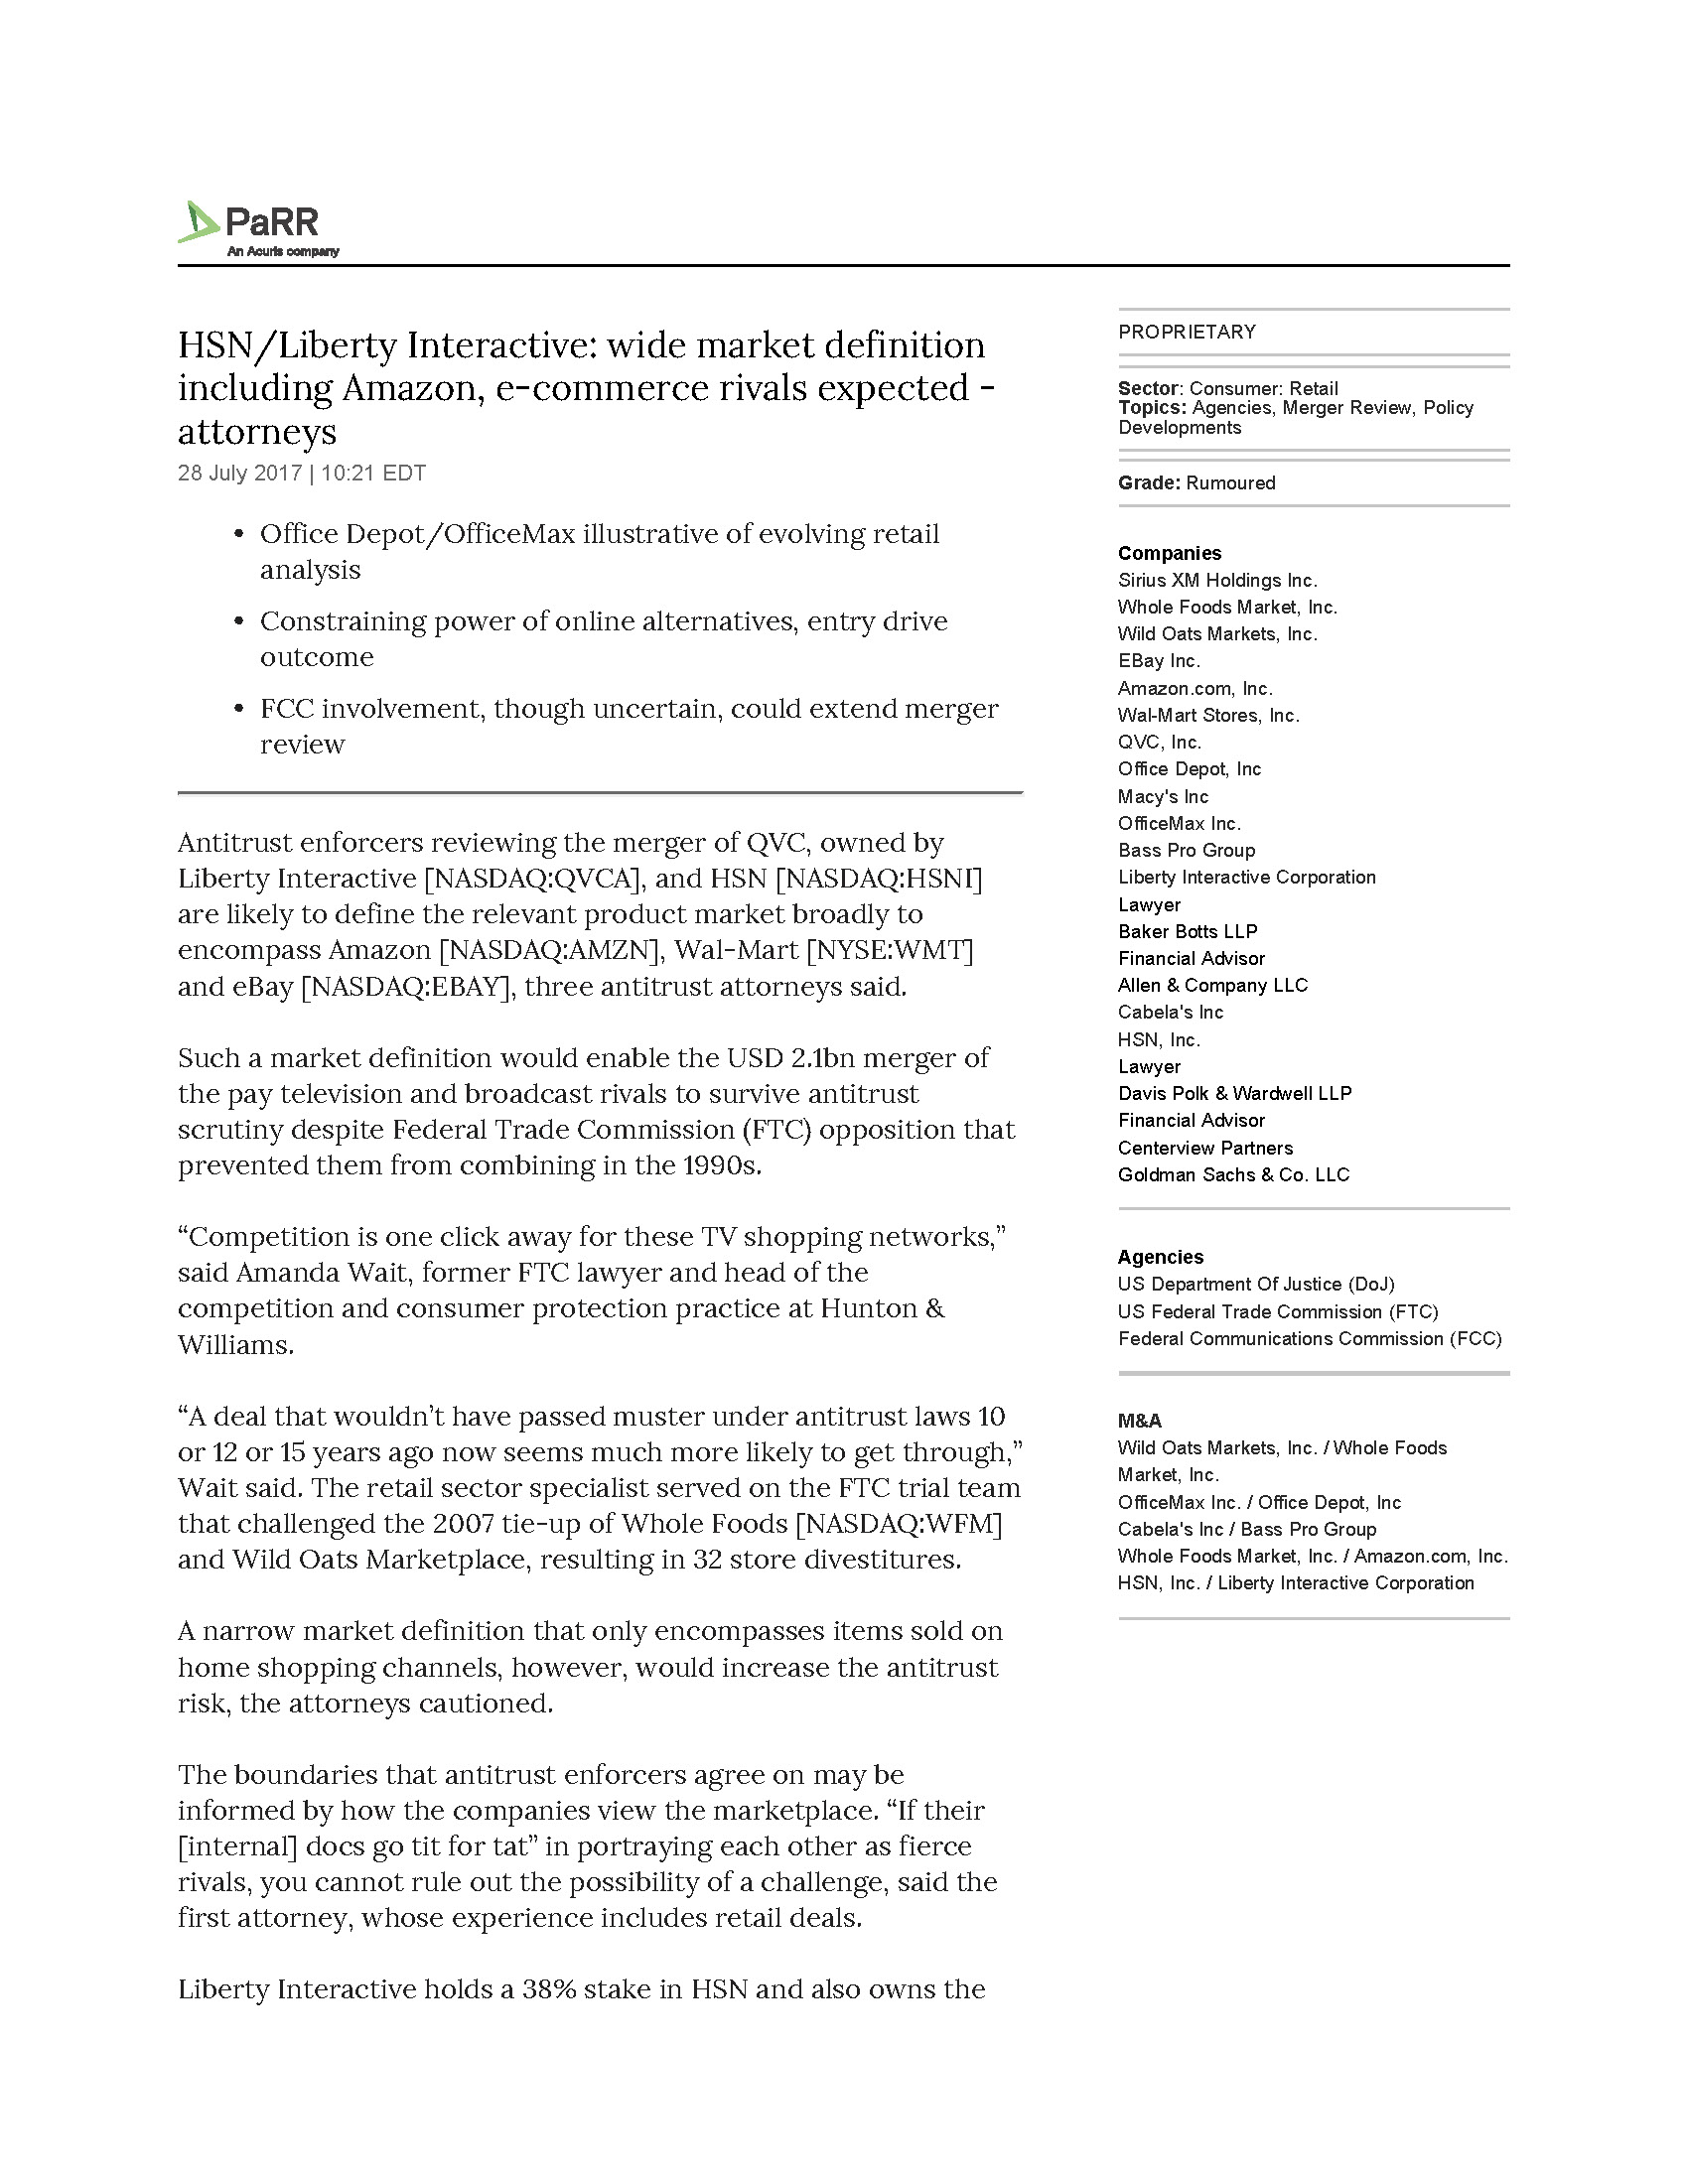 hsnliberty interactive wide market definition including amazon e commerce rivals expected